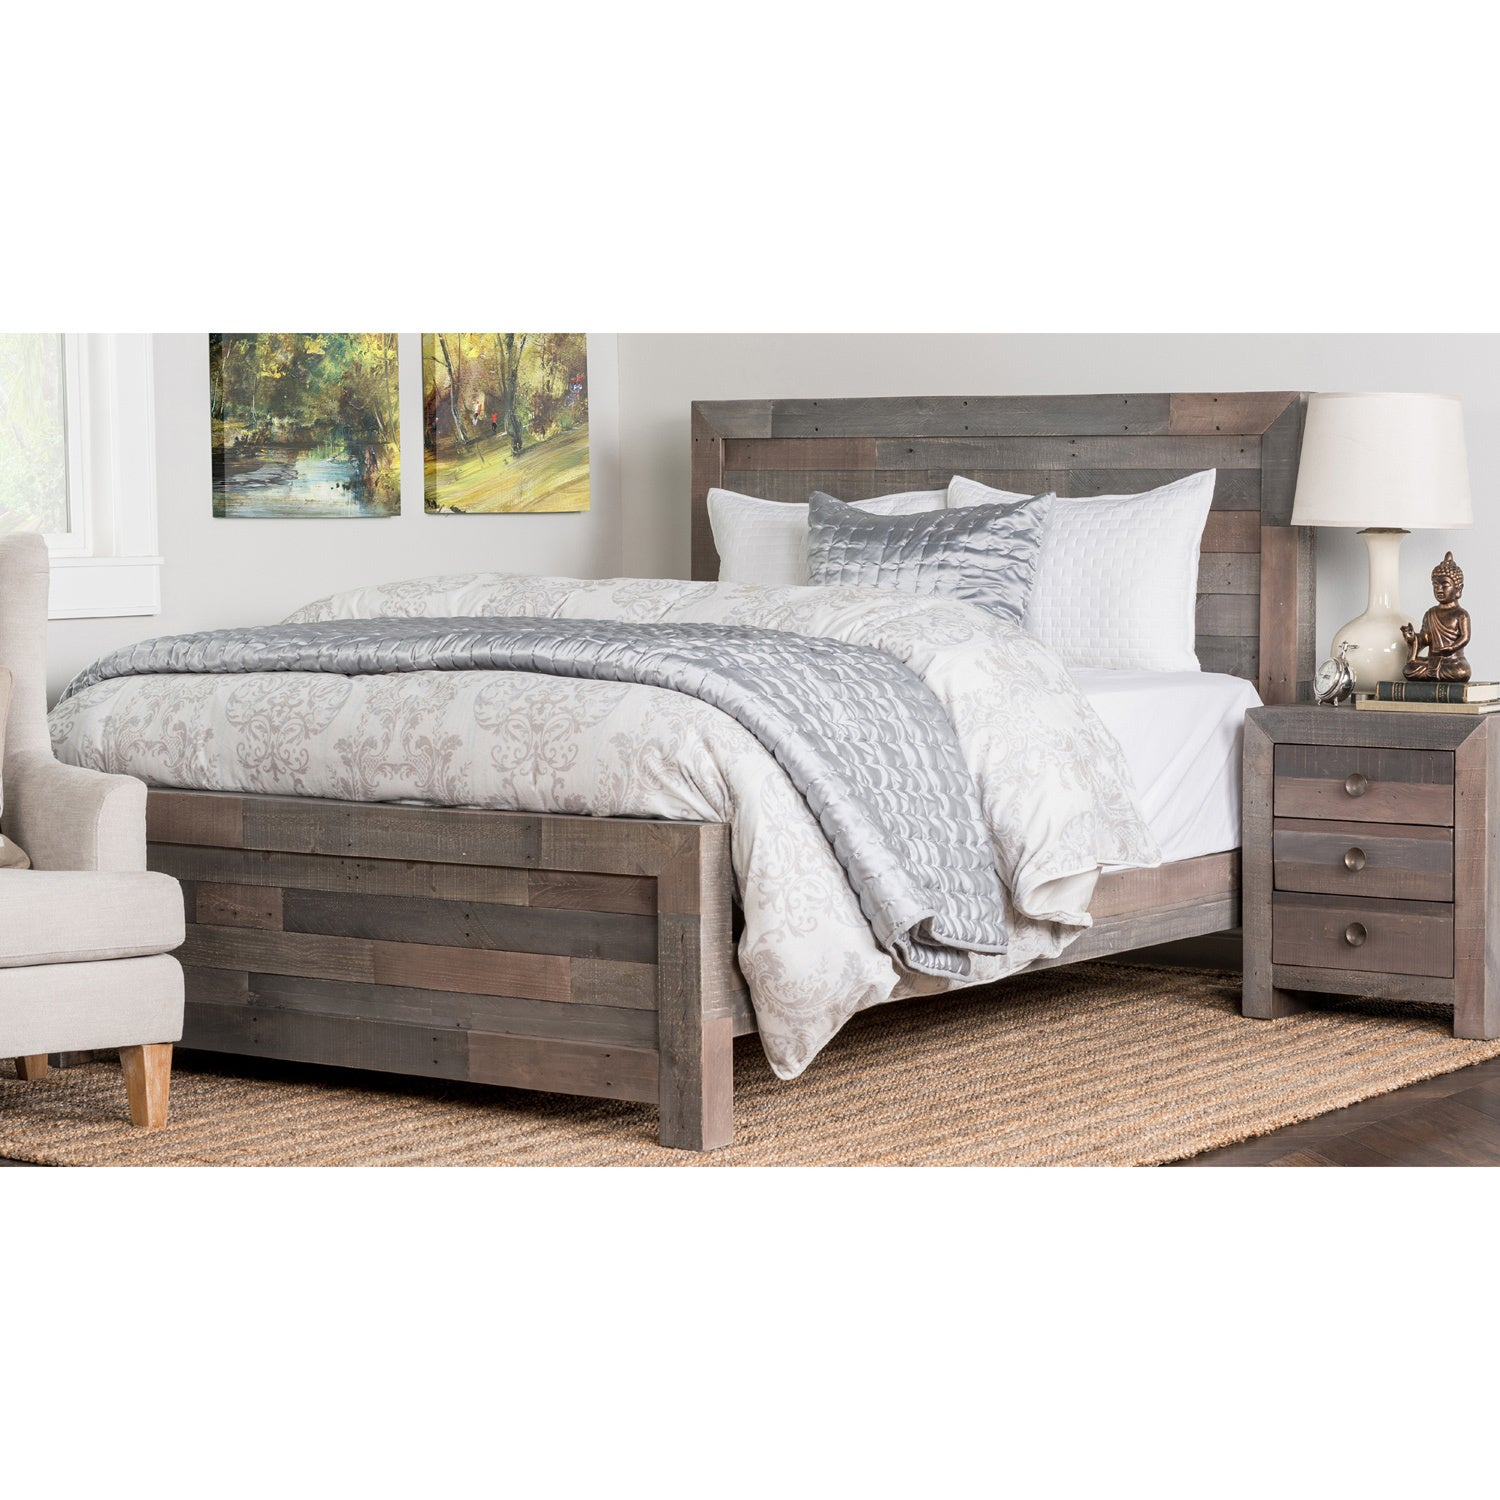 The Gray Barn Windswept Reclaimed Wood Bed